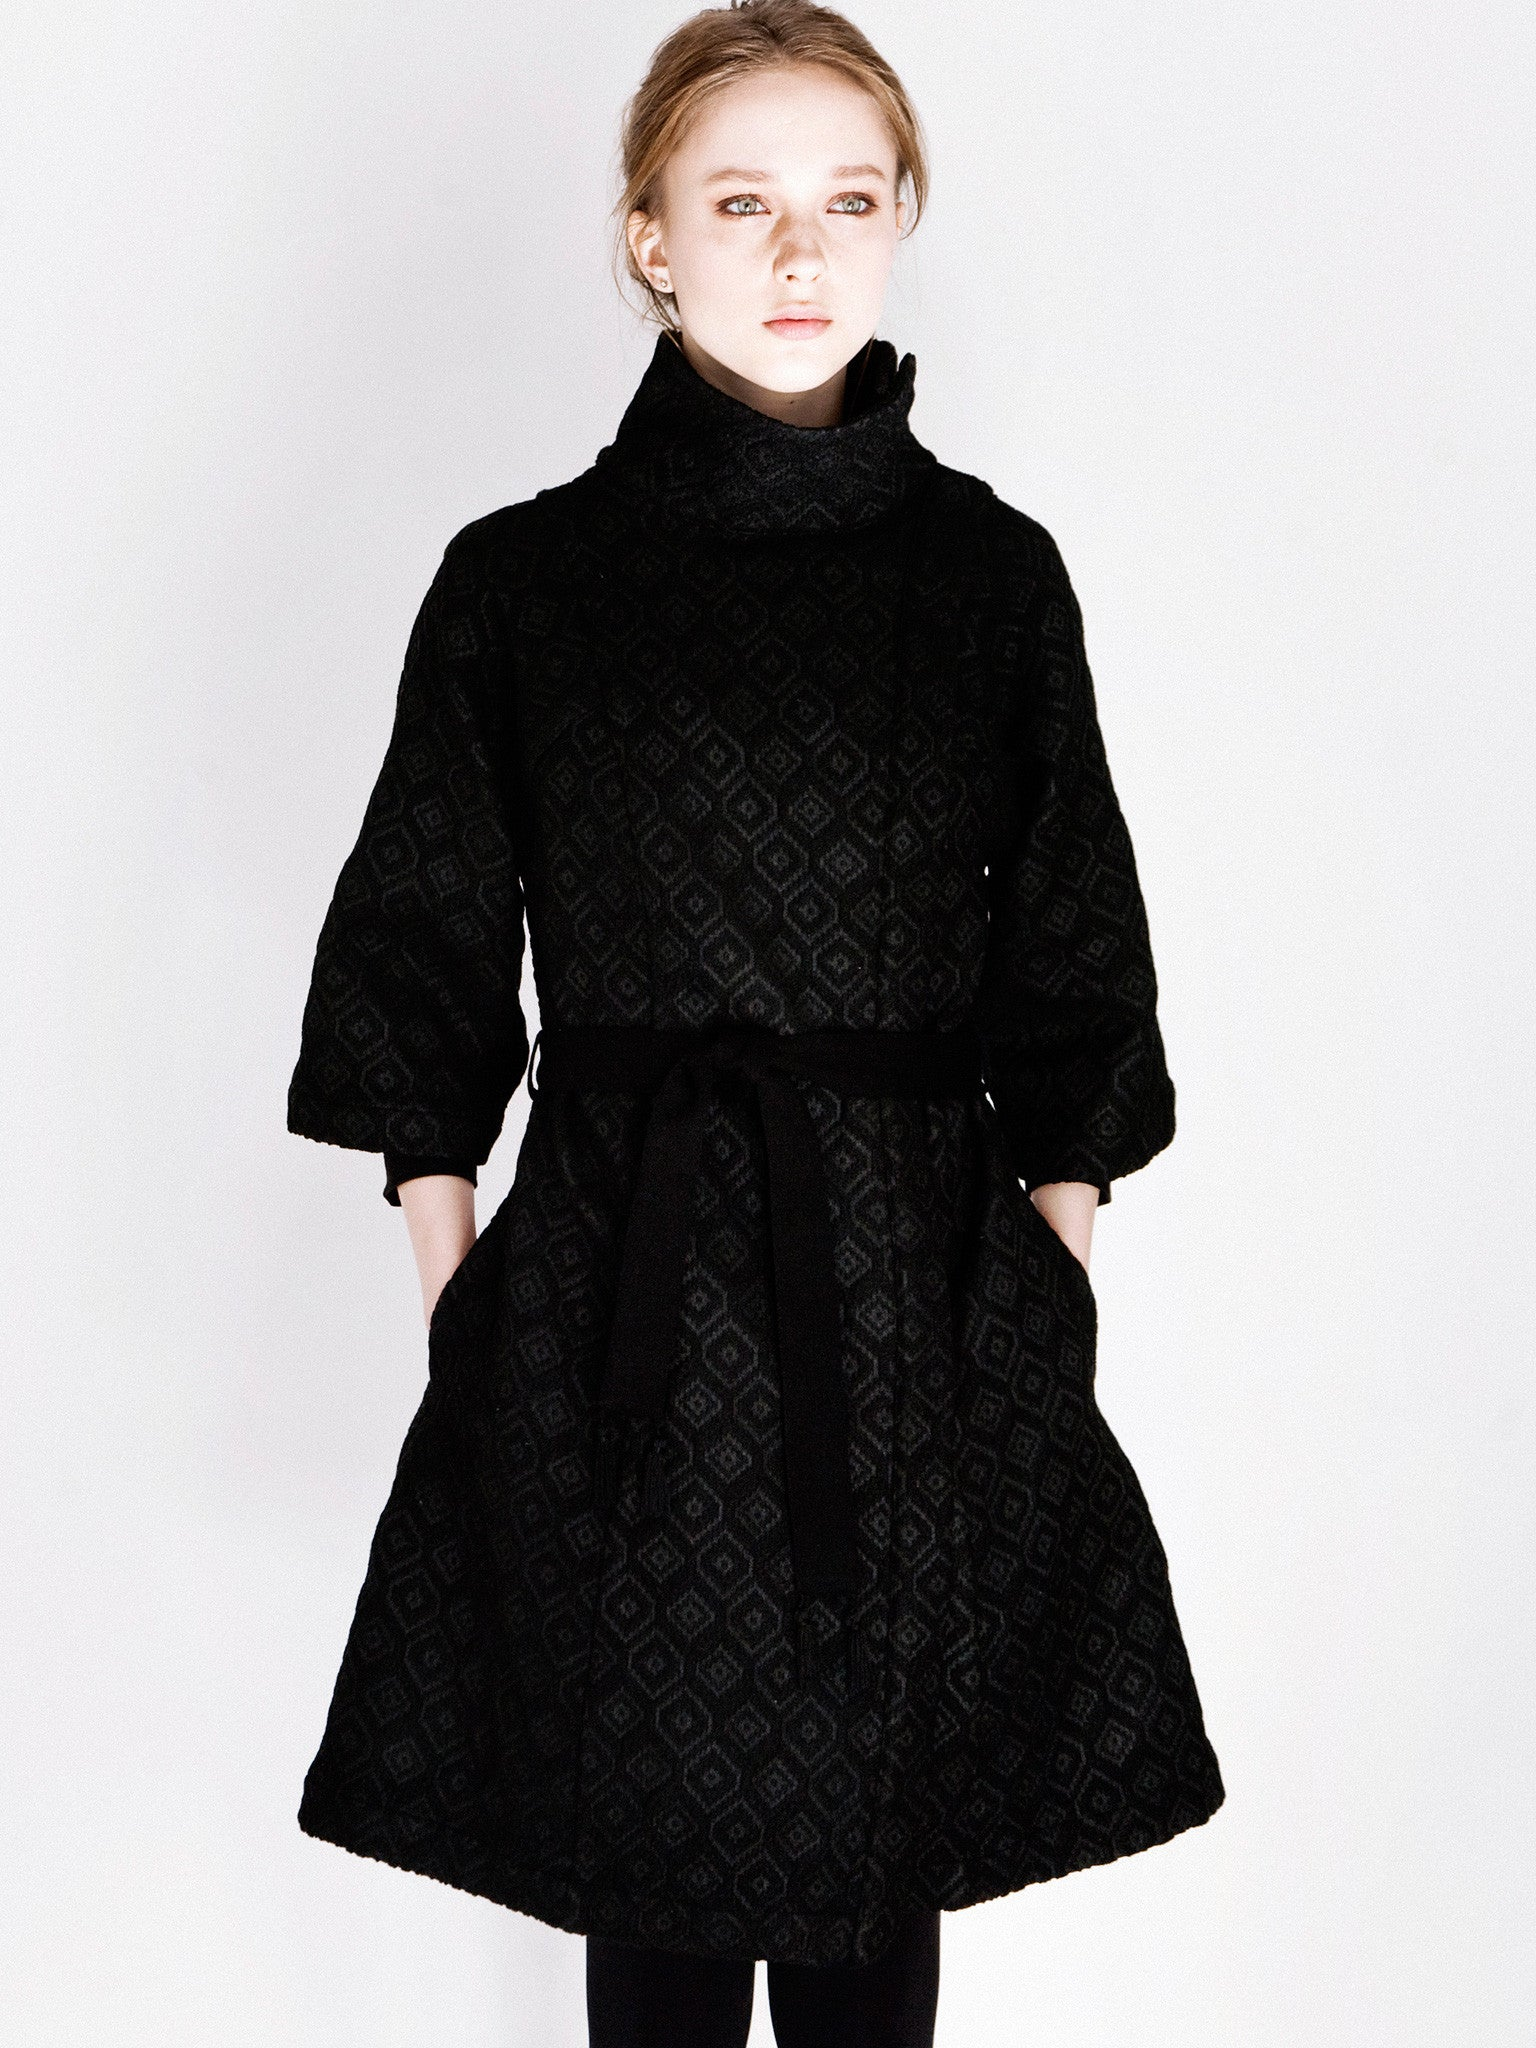 Wool Jacquard Shielding Coat